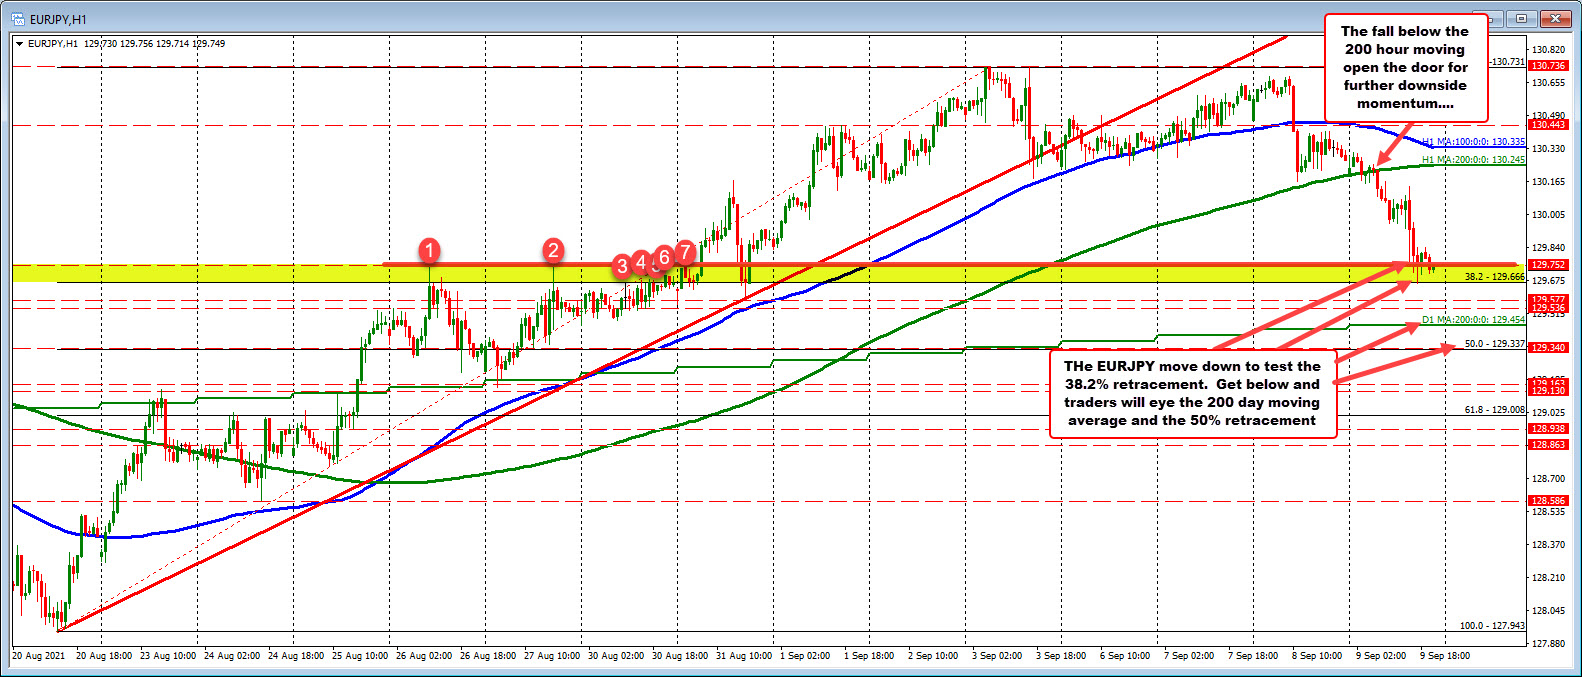 EURJPY corrects to the 38.2% retracement target